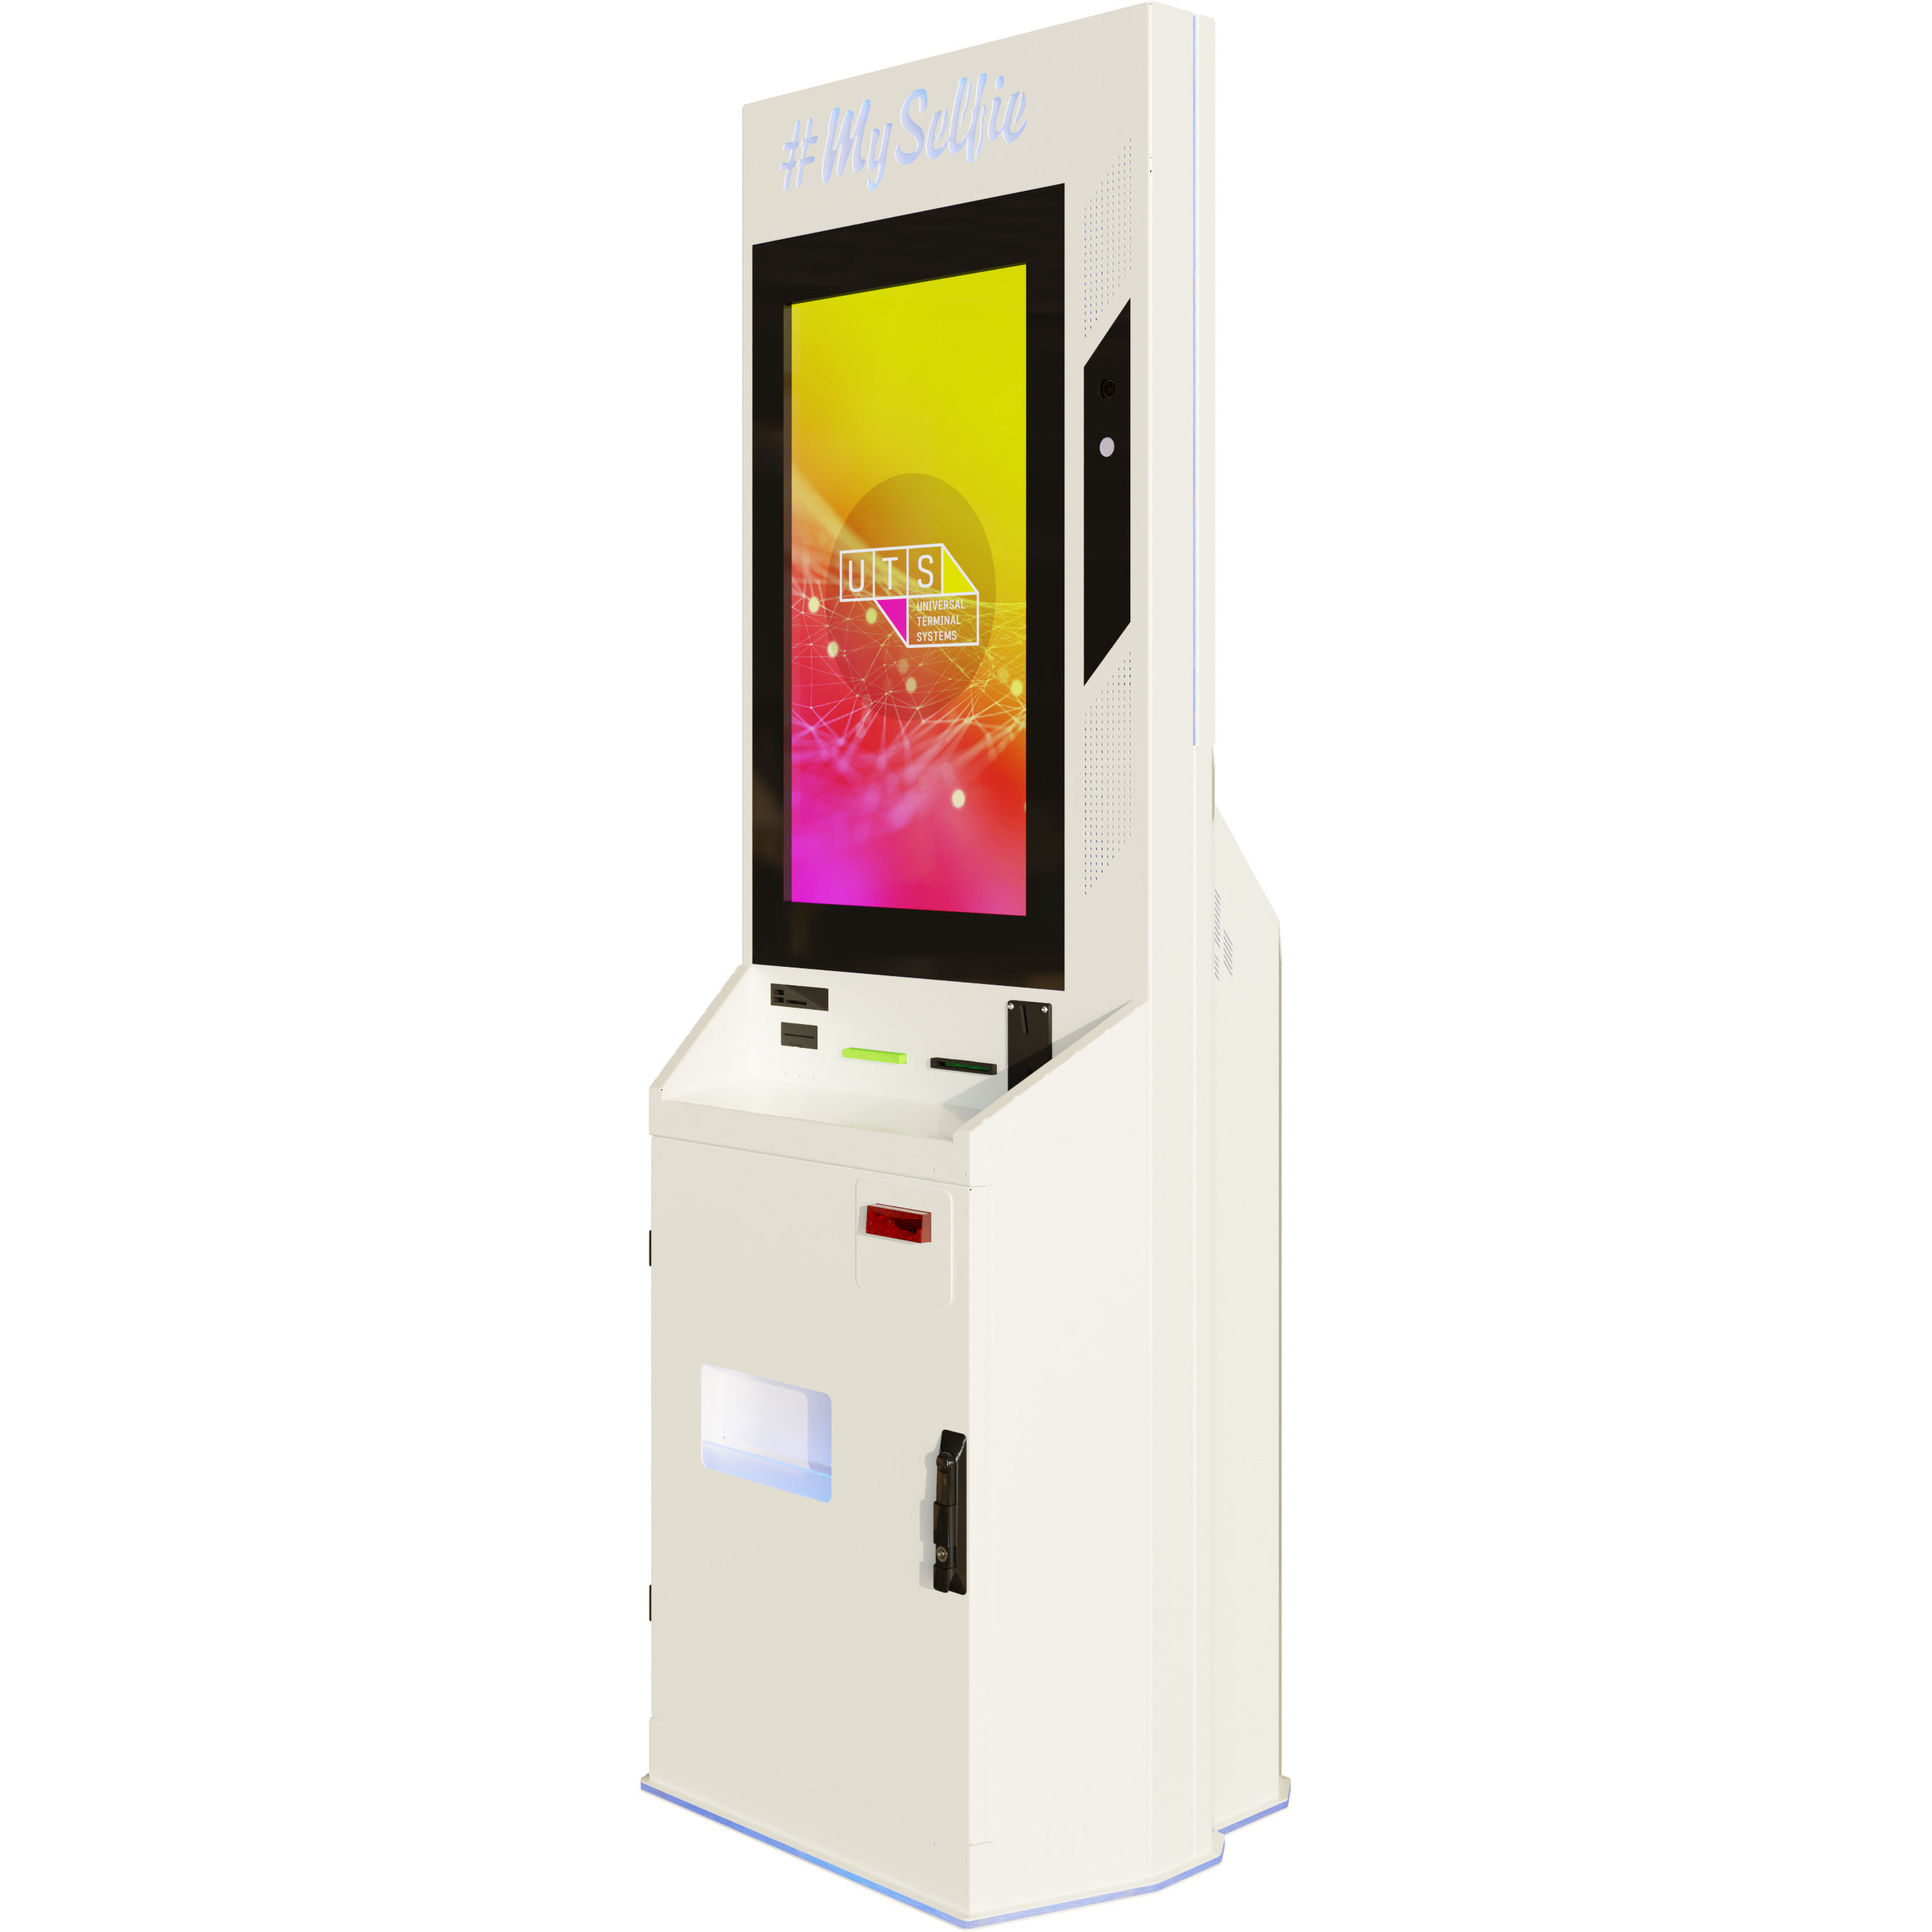 MySelfie touch screen photo booth kiosk machines Selfie station photo booth